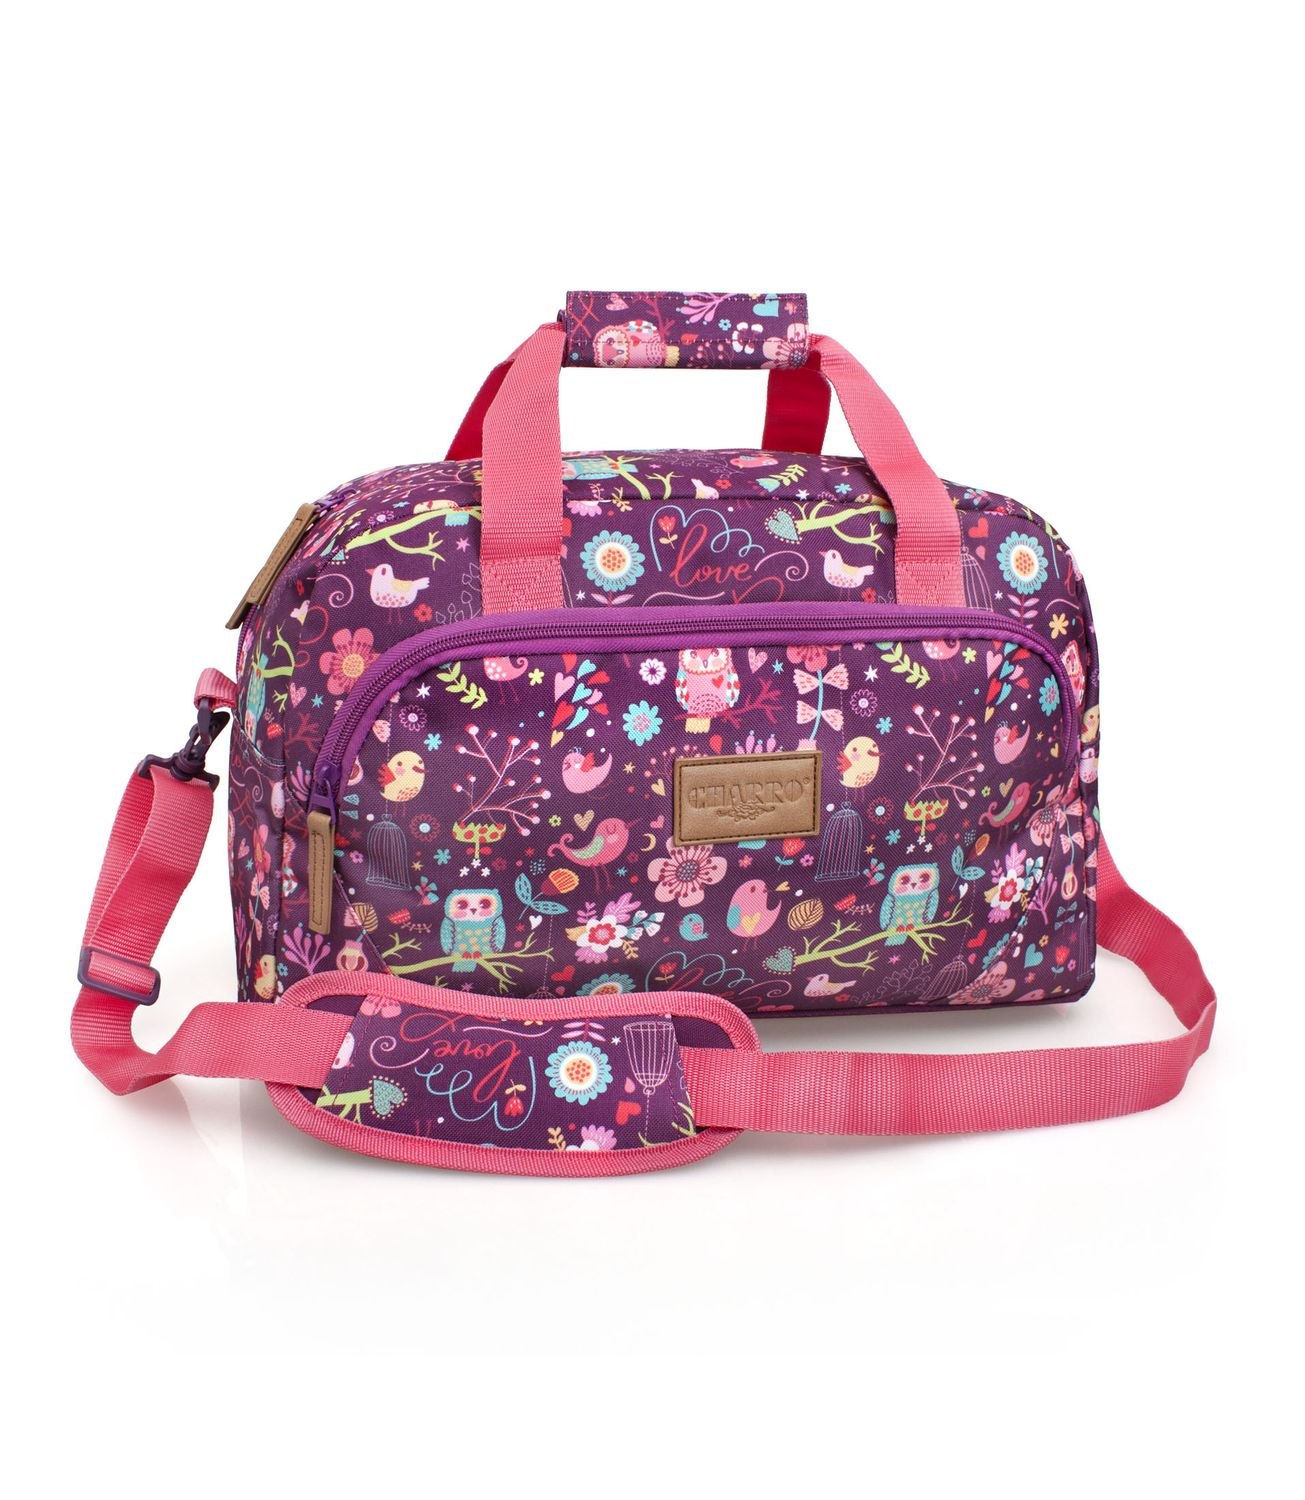 EL CHARRO Pink Travel Bag BIRD – image 1